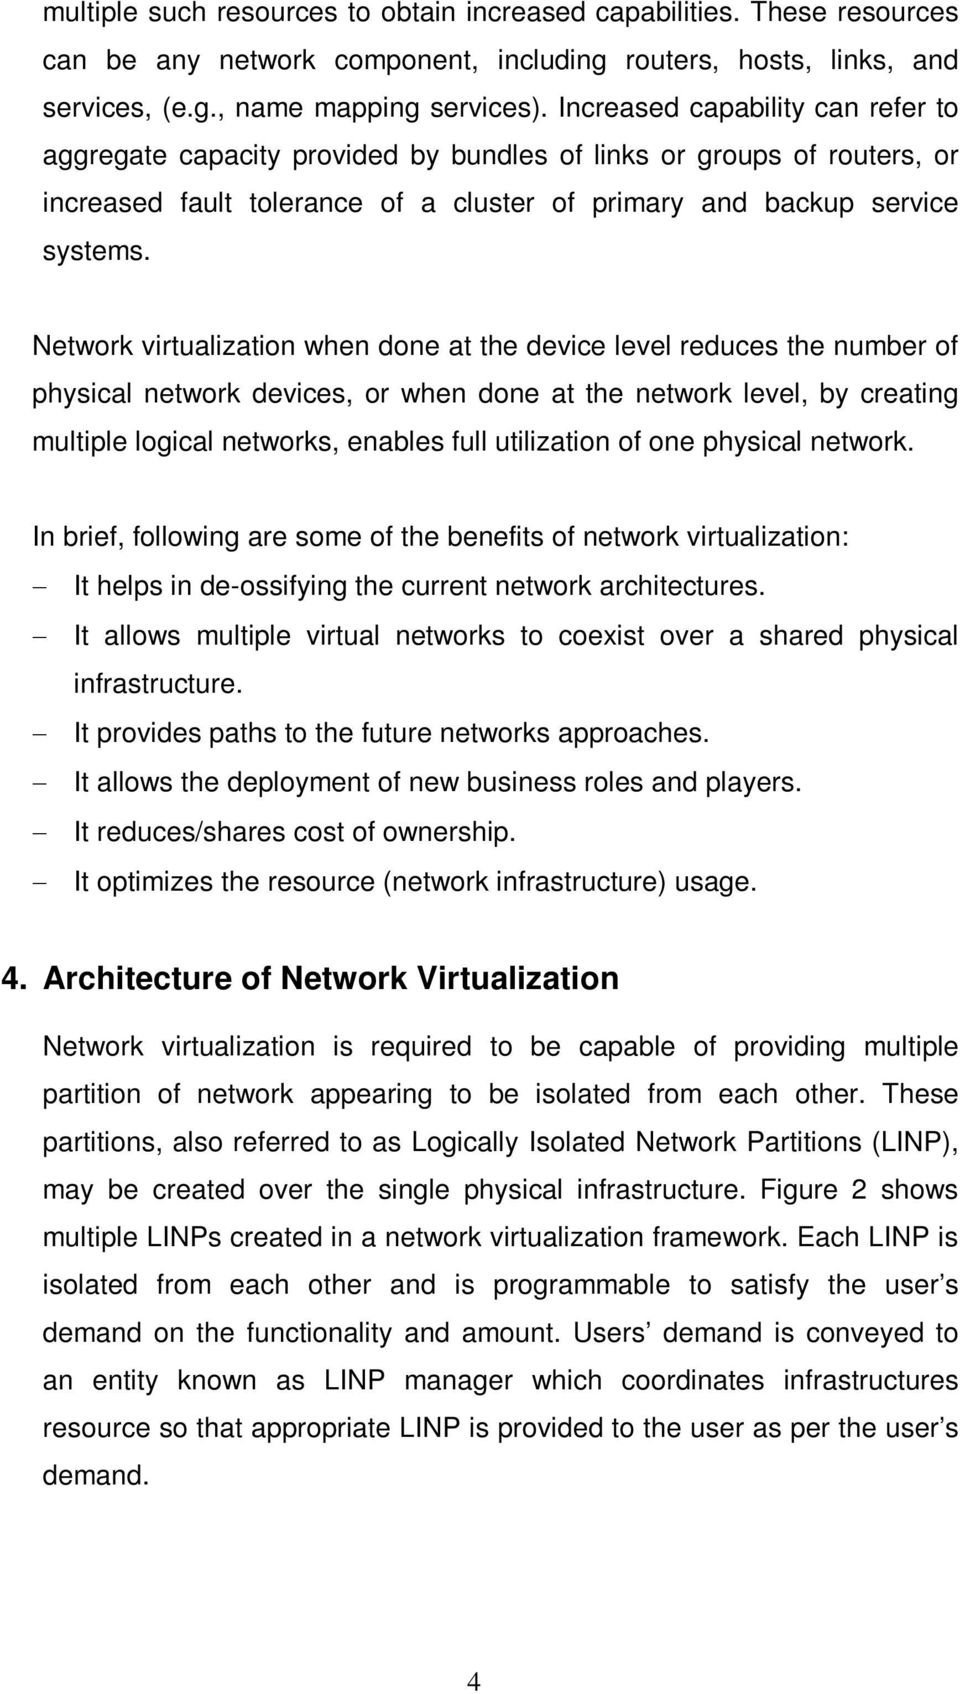 Network virtualization when done at the device level reduces the number of physical network devices, or when done at the network level, by creating multiple logical networks, enables full utilization